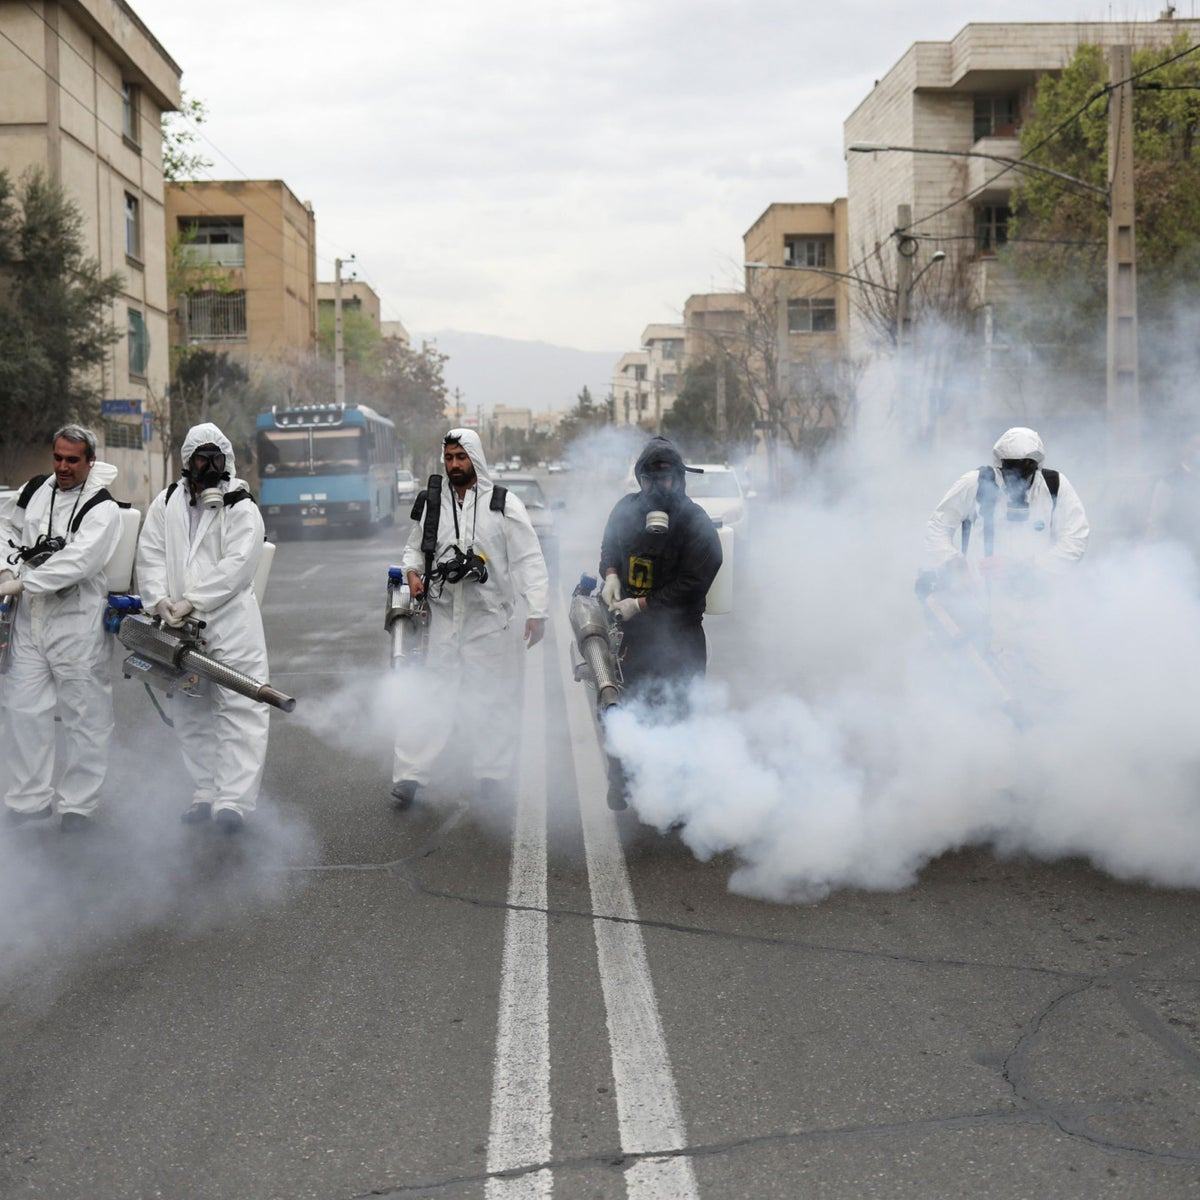 Firefighters wear protective face masks, amid fear of coronavirus disease (COVID-19), as they disinfect the streets ahead of the Iranian New Year holiday, in Tehran, Iran March 18, 2020.